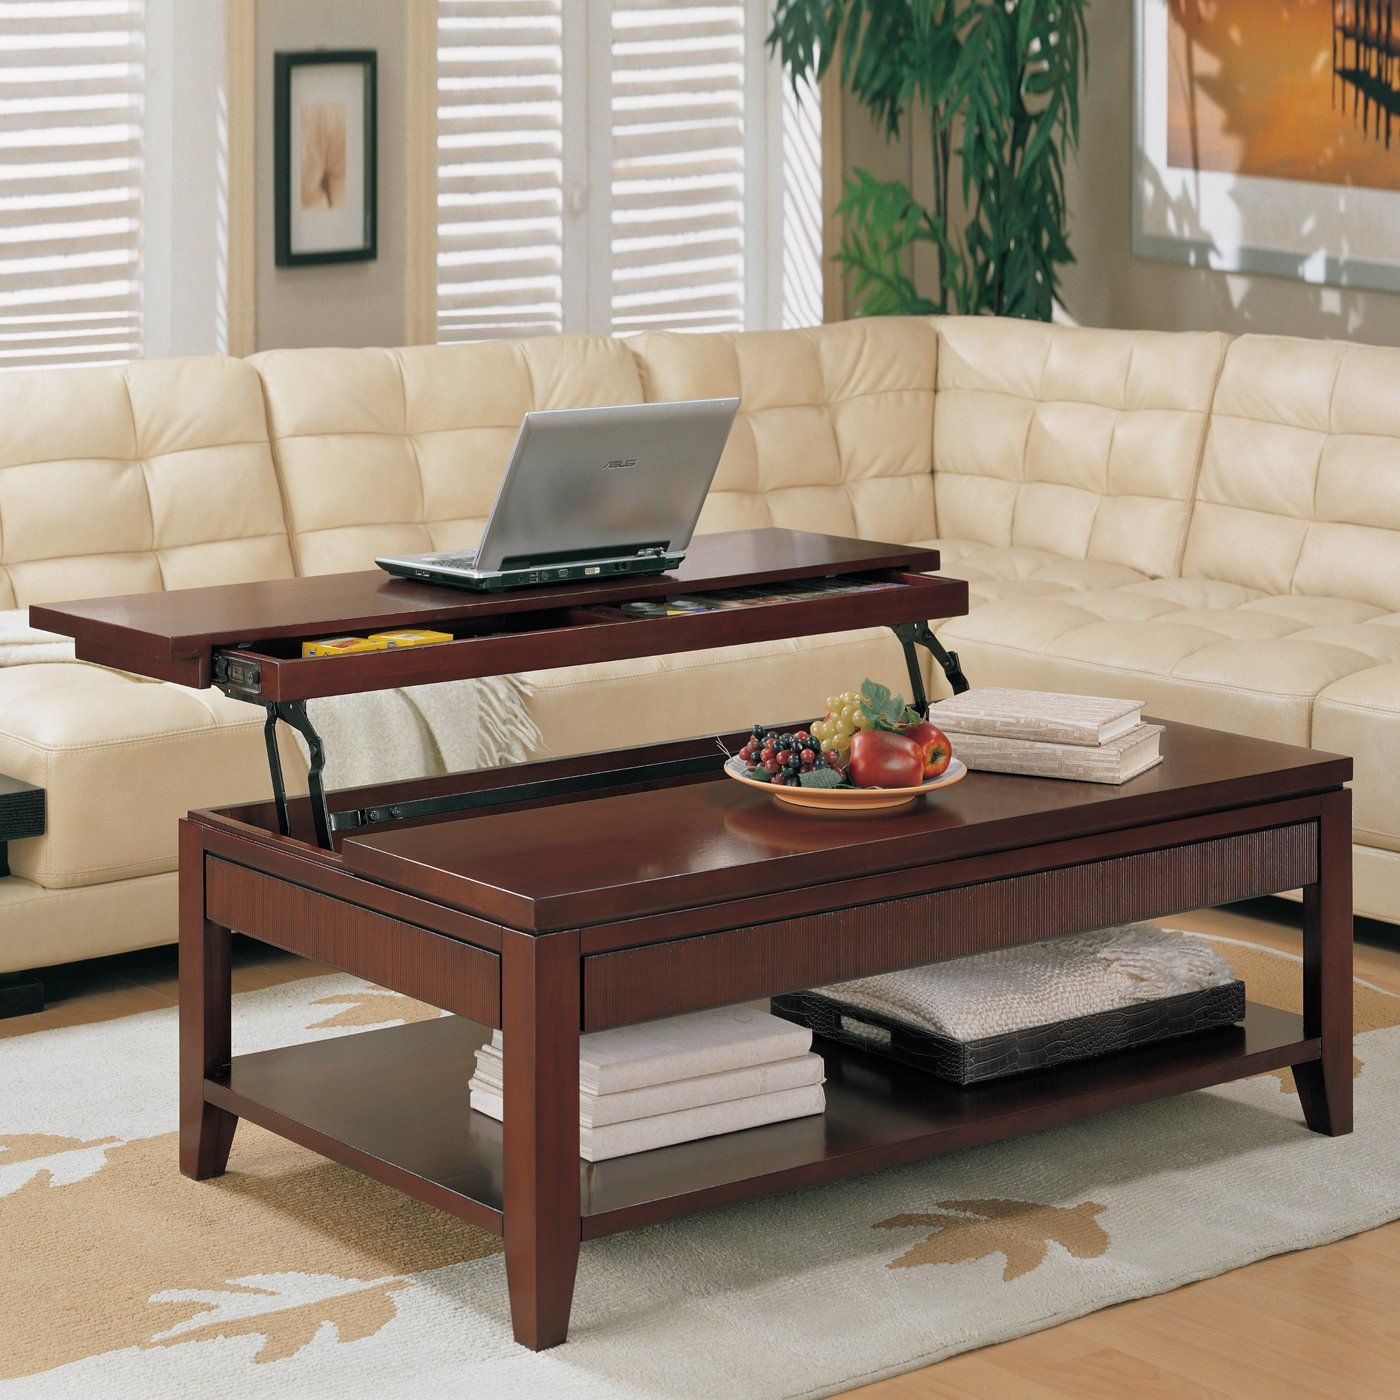 Lift Top Coffee Table Coffee Table Inspiration Coffee Table